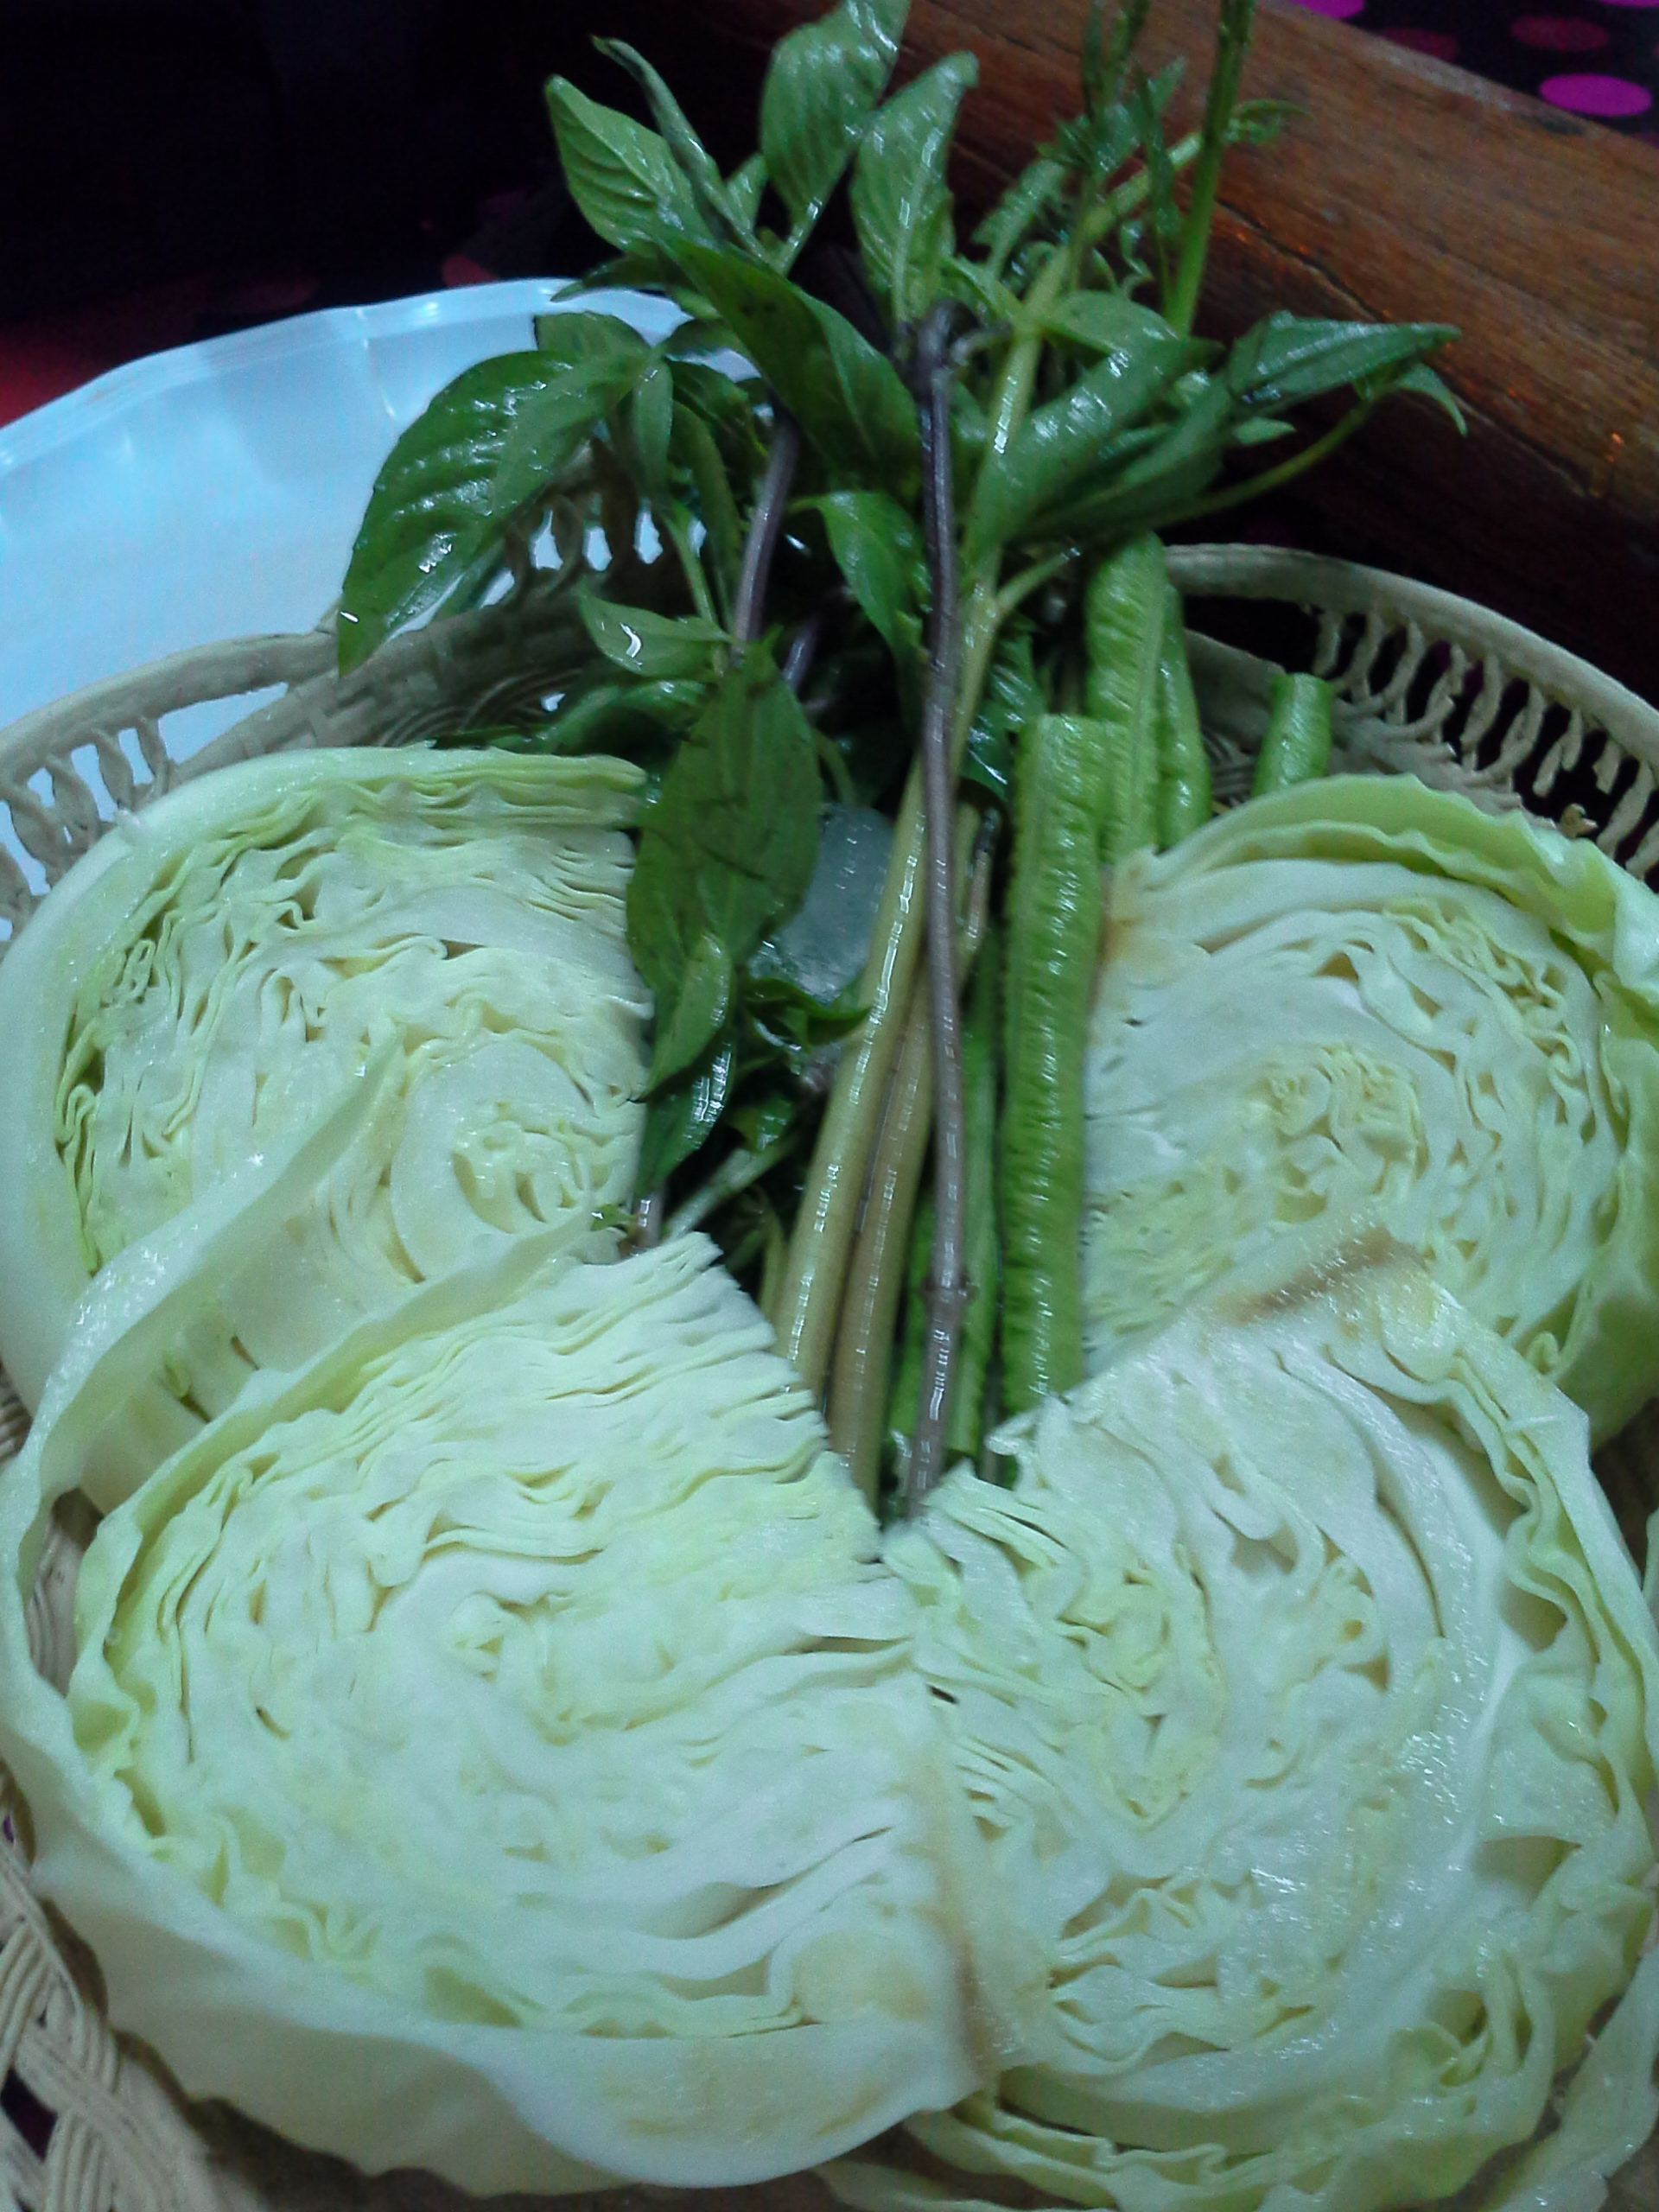 Chinese cancer cure herbs -  Cancer Cures And Nor Are They Claimed To Be